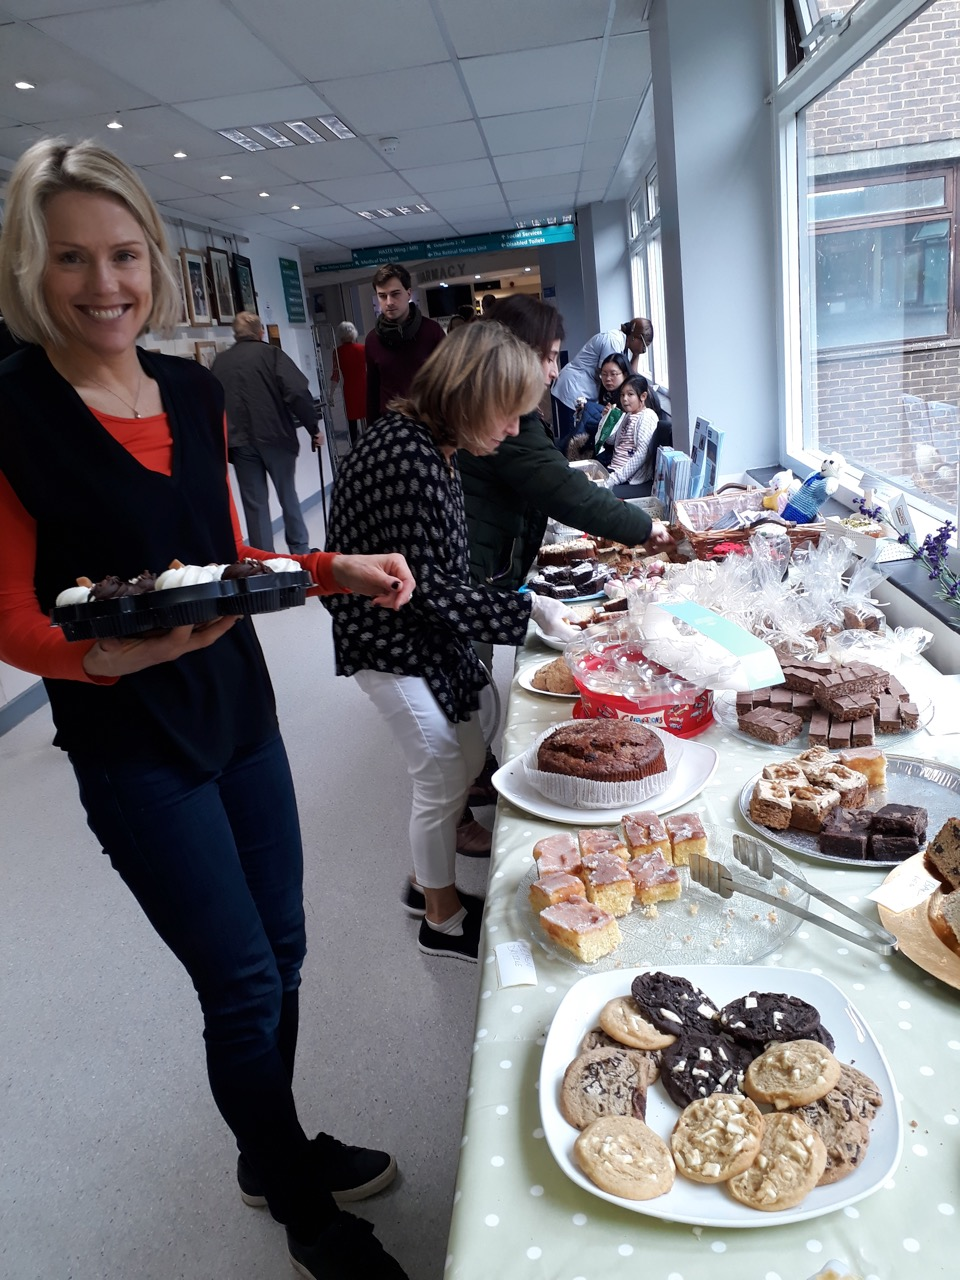 GRACE team at the Cake Sale for Ovarian Cancer Awareness at the Royal Surrey County Hospital